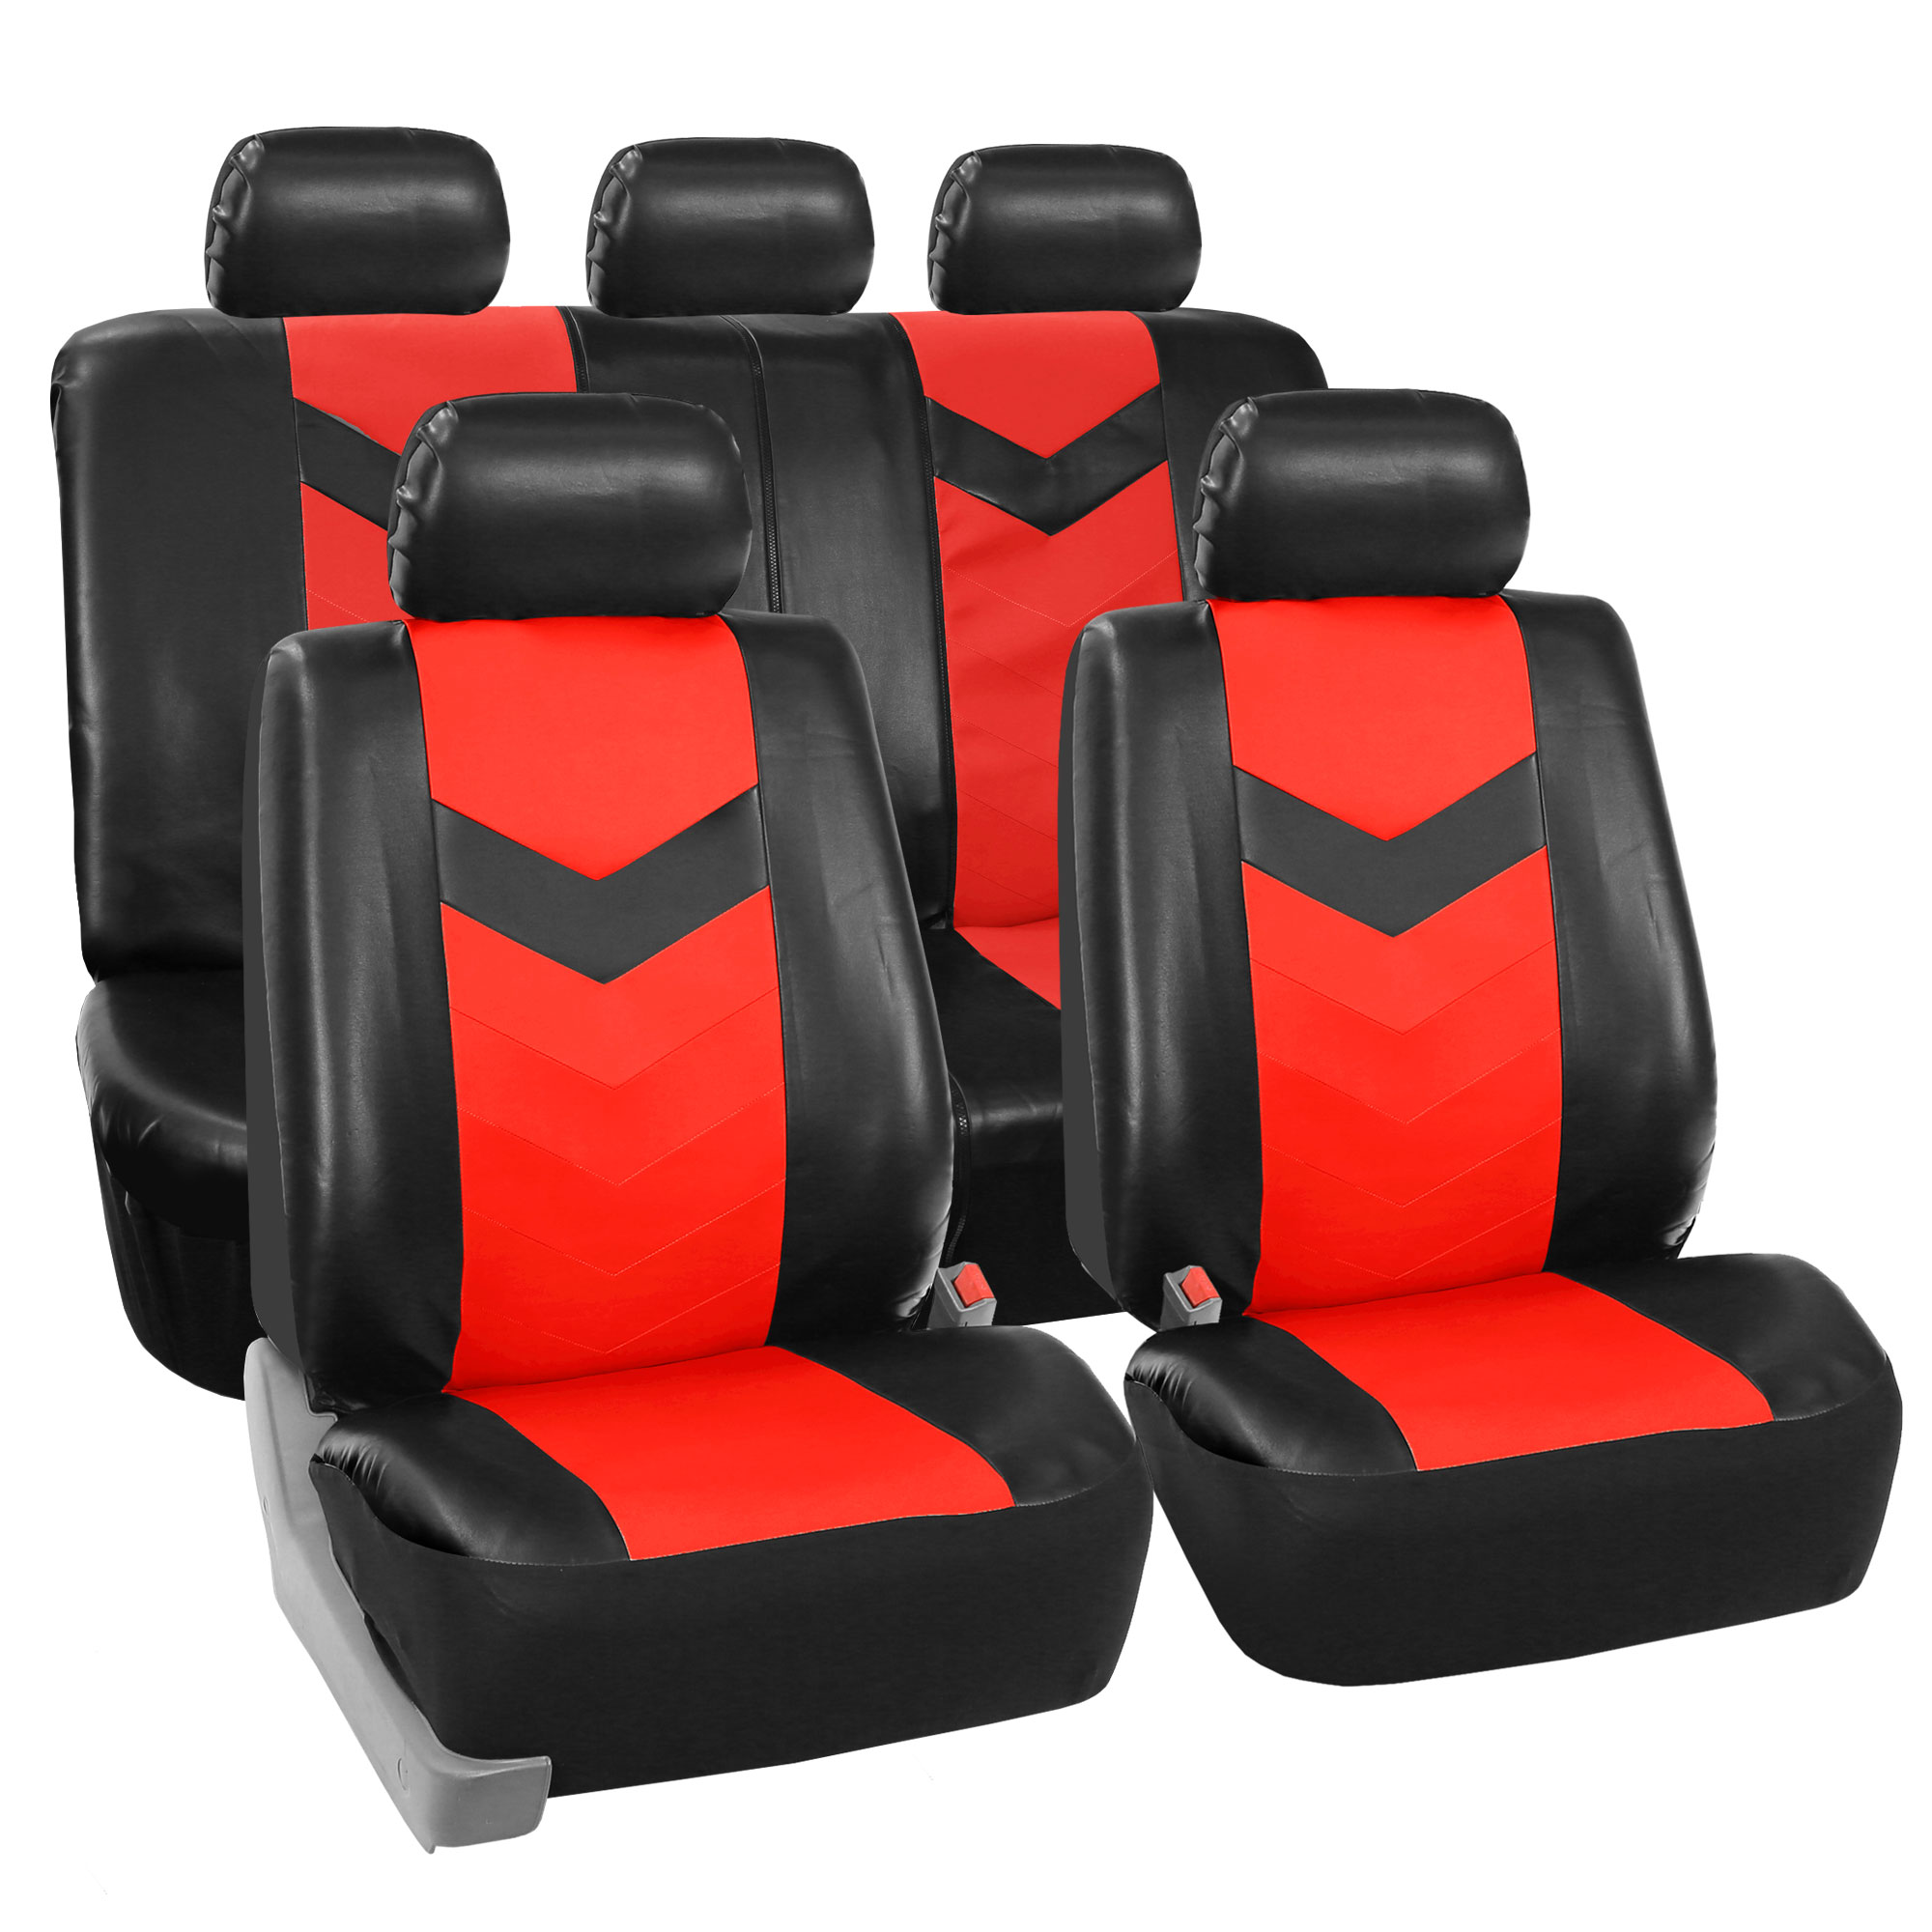 Infiniti qx60 rubber floor mats - Faux Leather Car Seat Covers For Auto Red